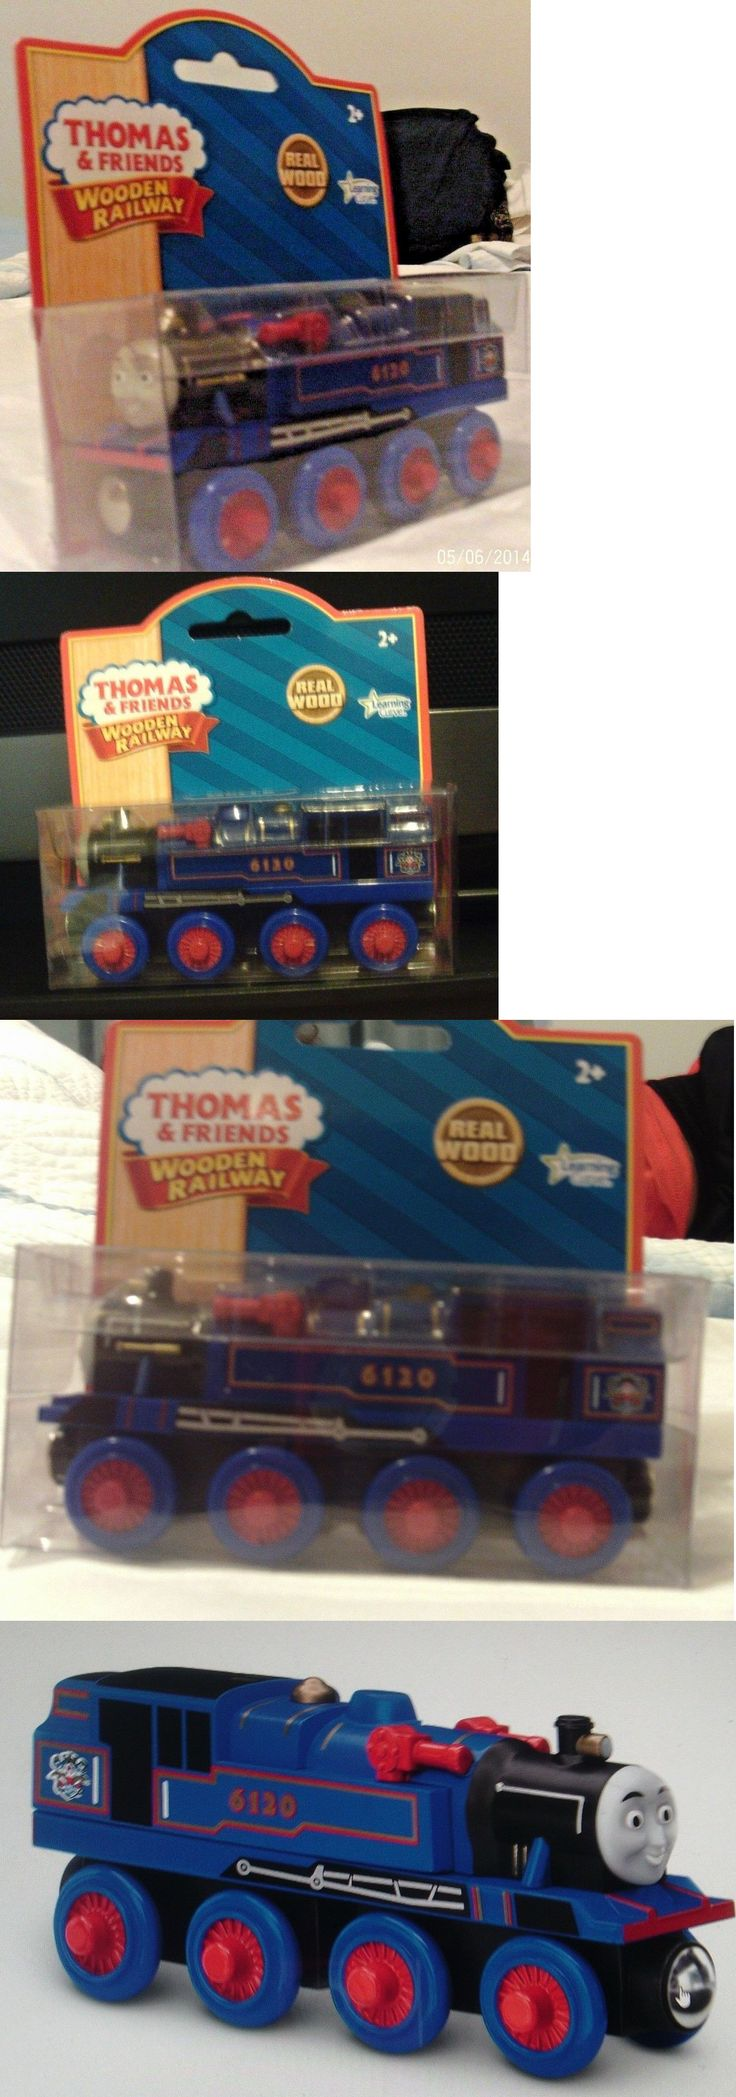 Other Thomas Games and Toys 22721: Thomas And Friends Wooden Railway Belle Lc98127 Brand New -> BUY IT NOW ONLY: $42 on eBay!